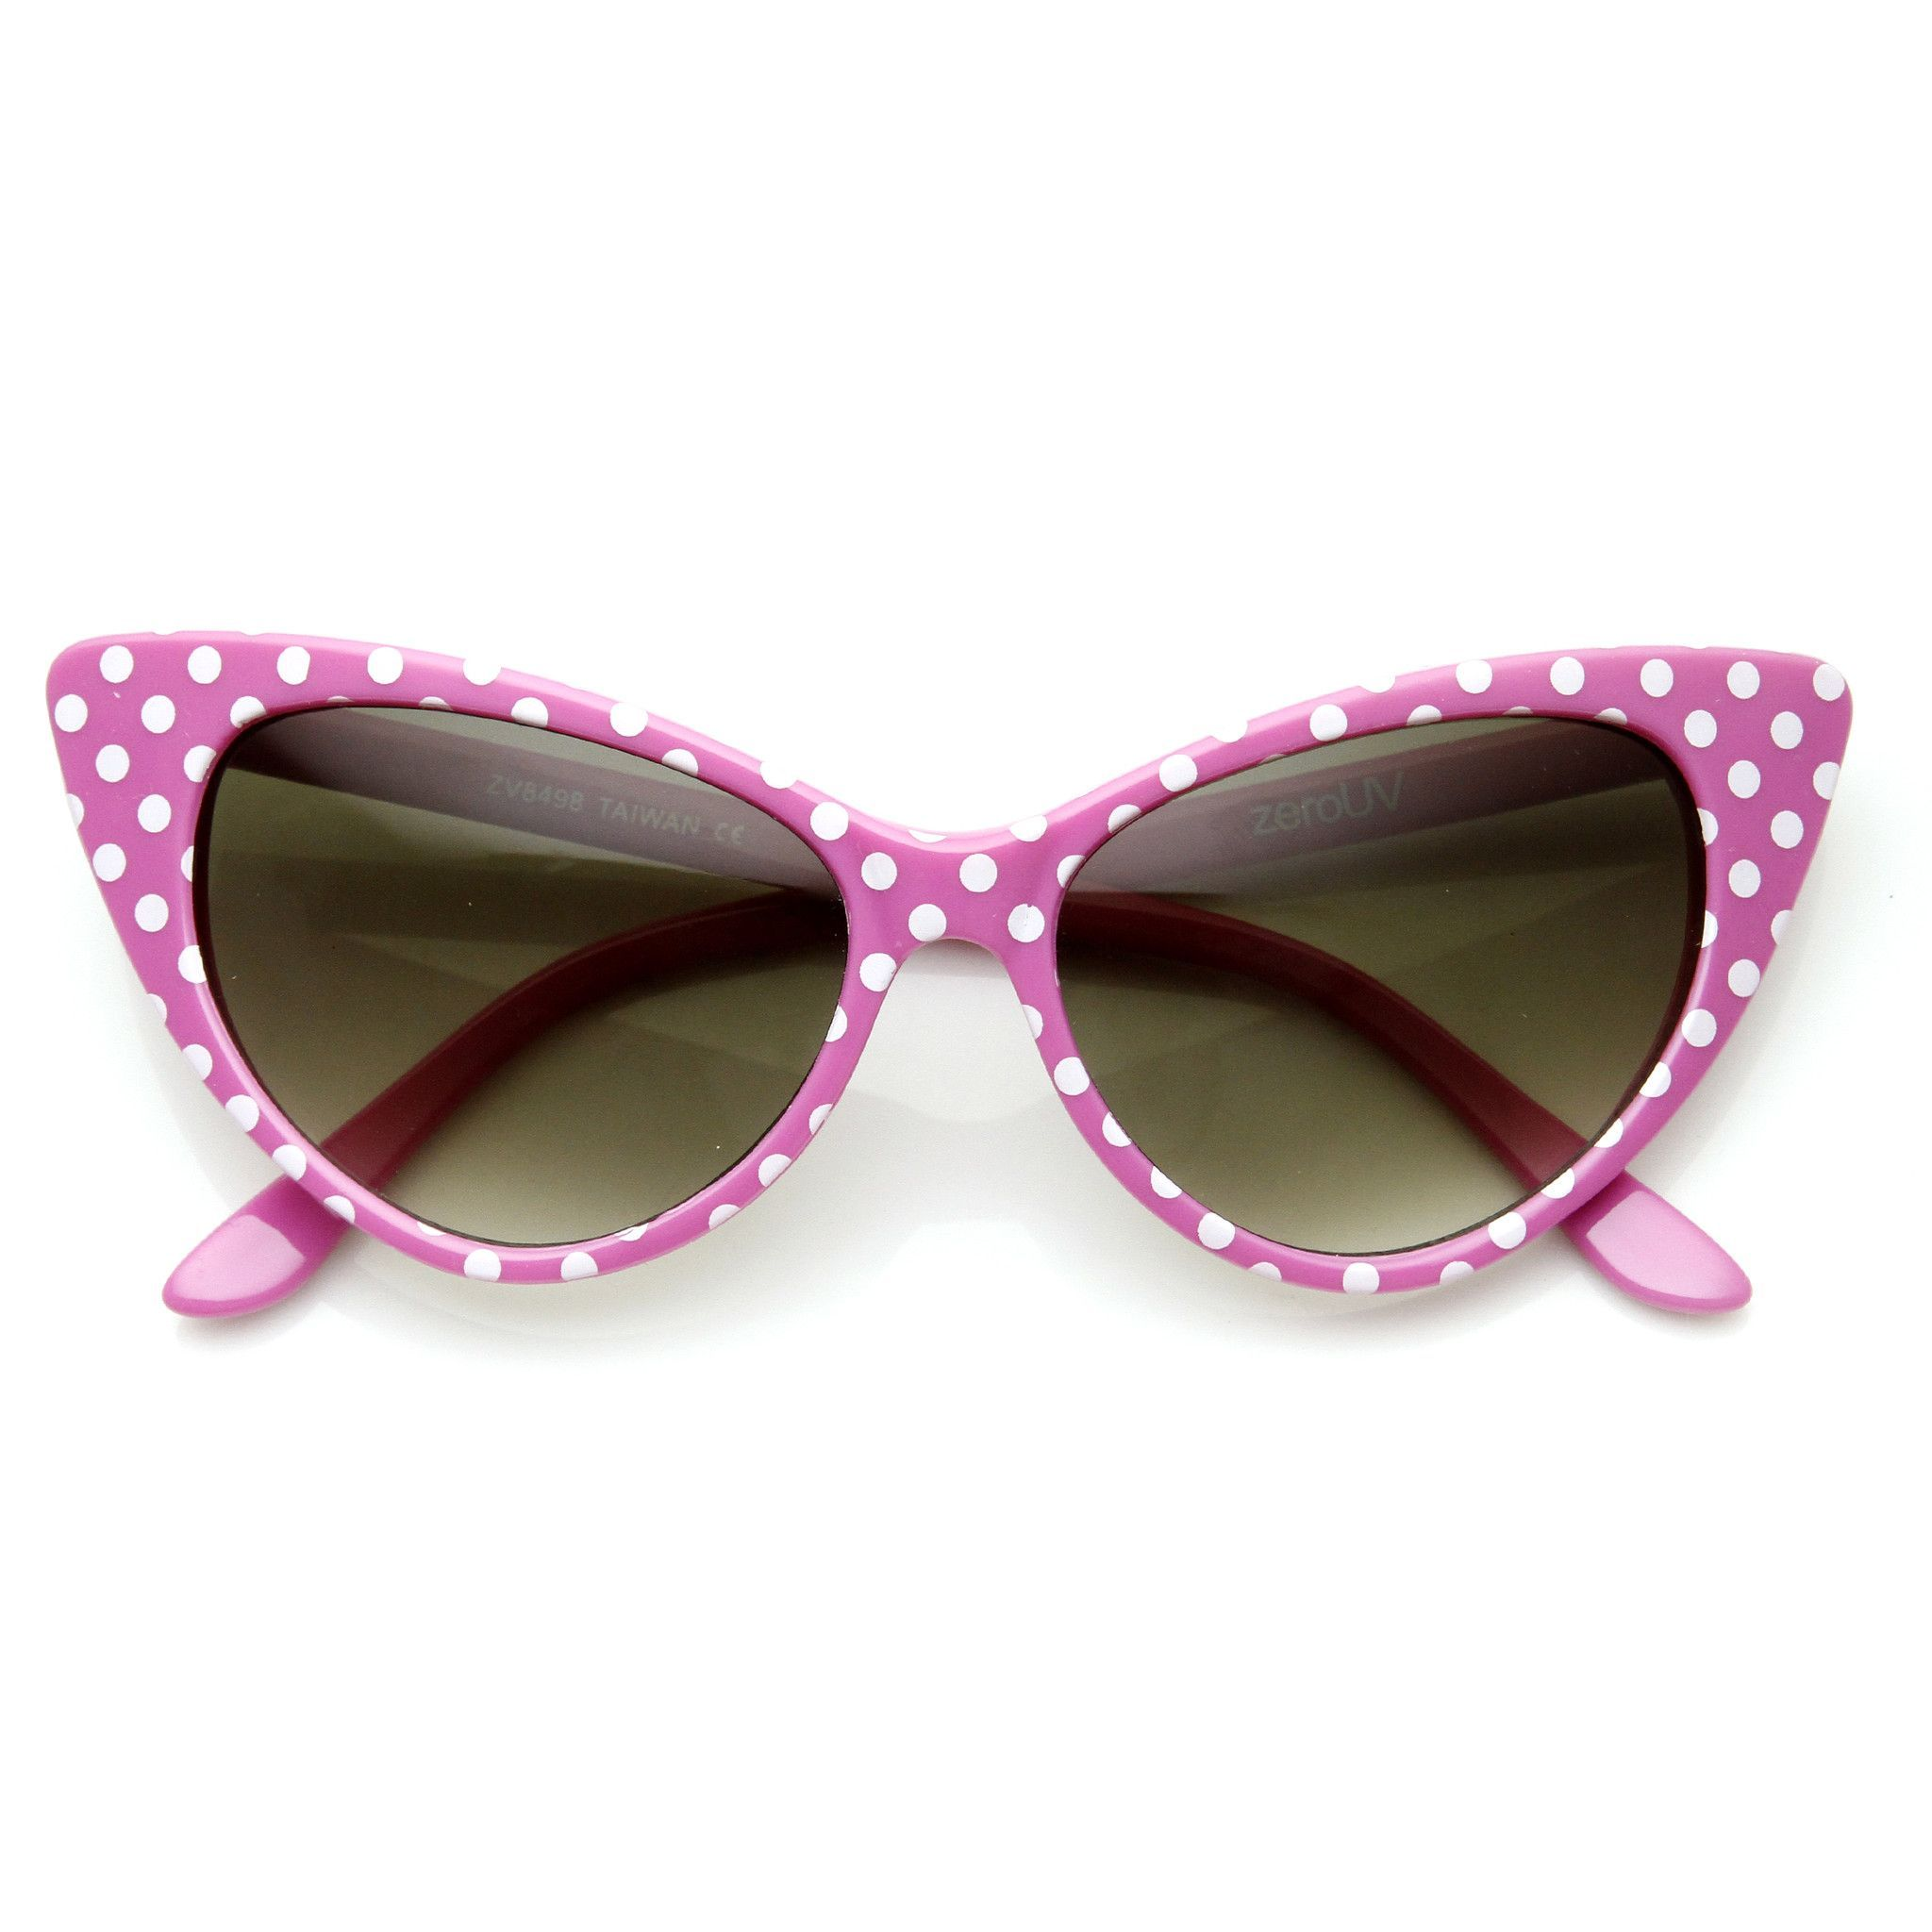 441acad564 Retro 1950 s Polka Dot Cat Eye Fashion Sunglasses 8498 from zeroUV